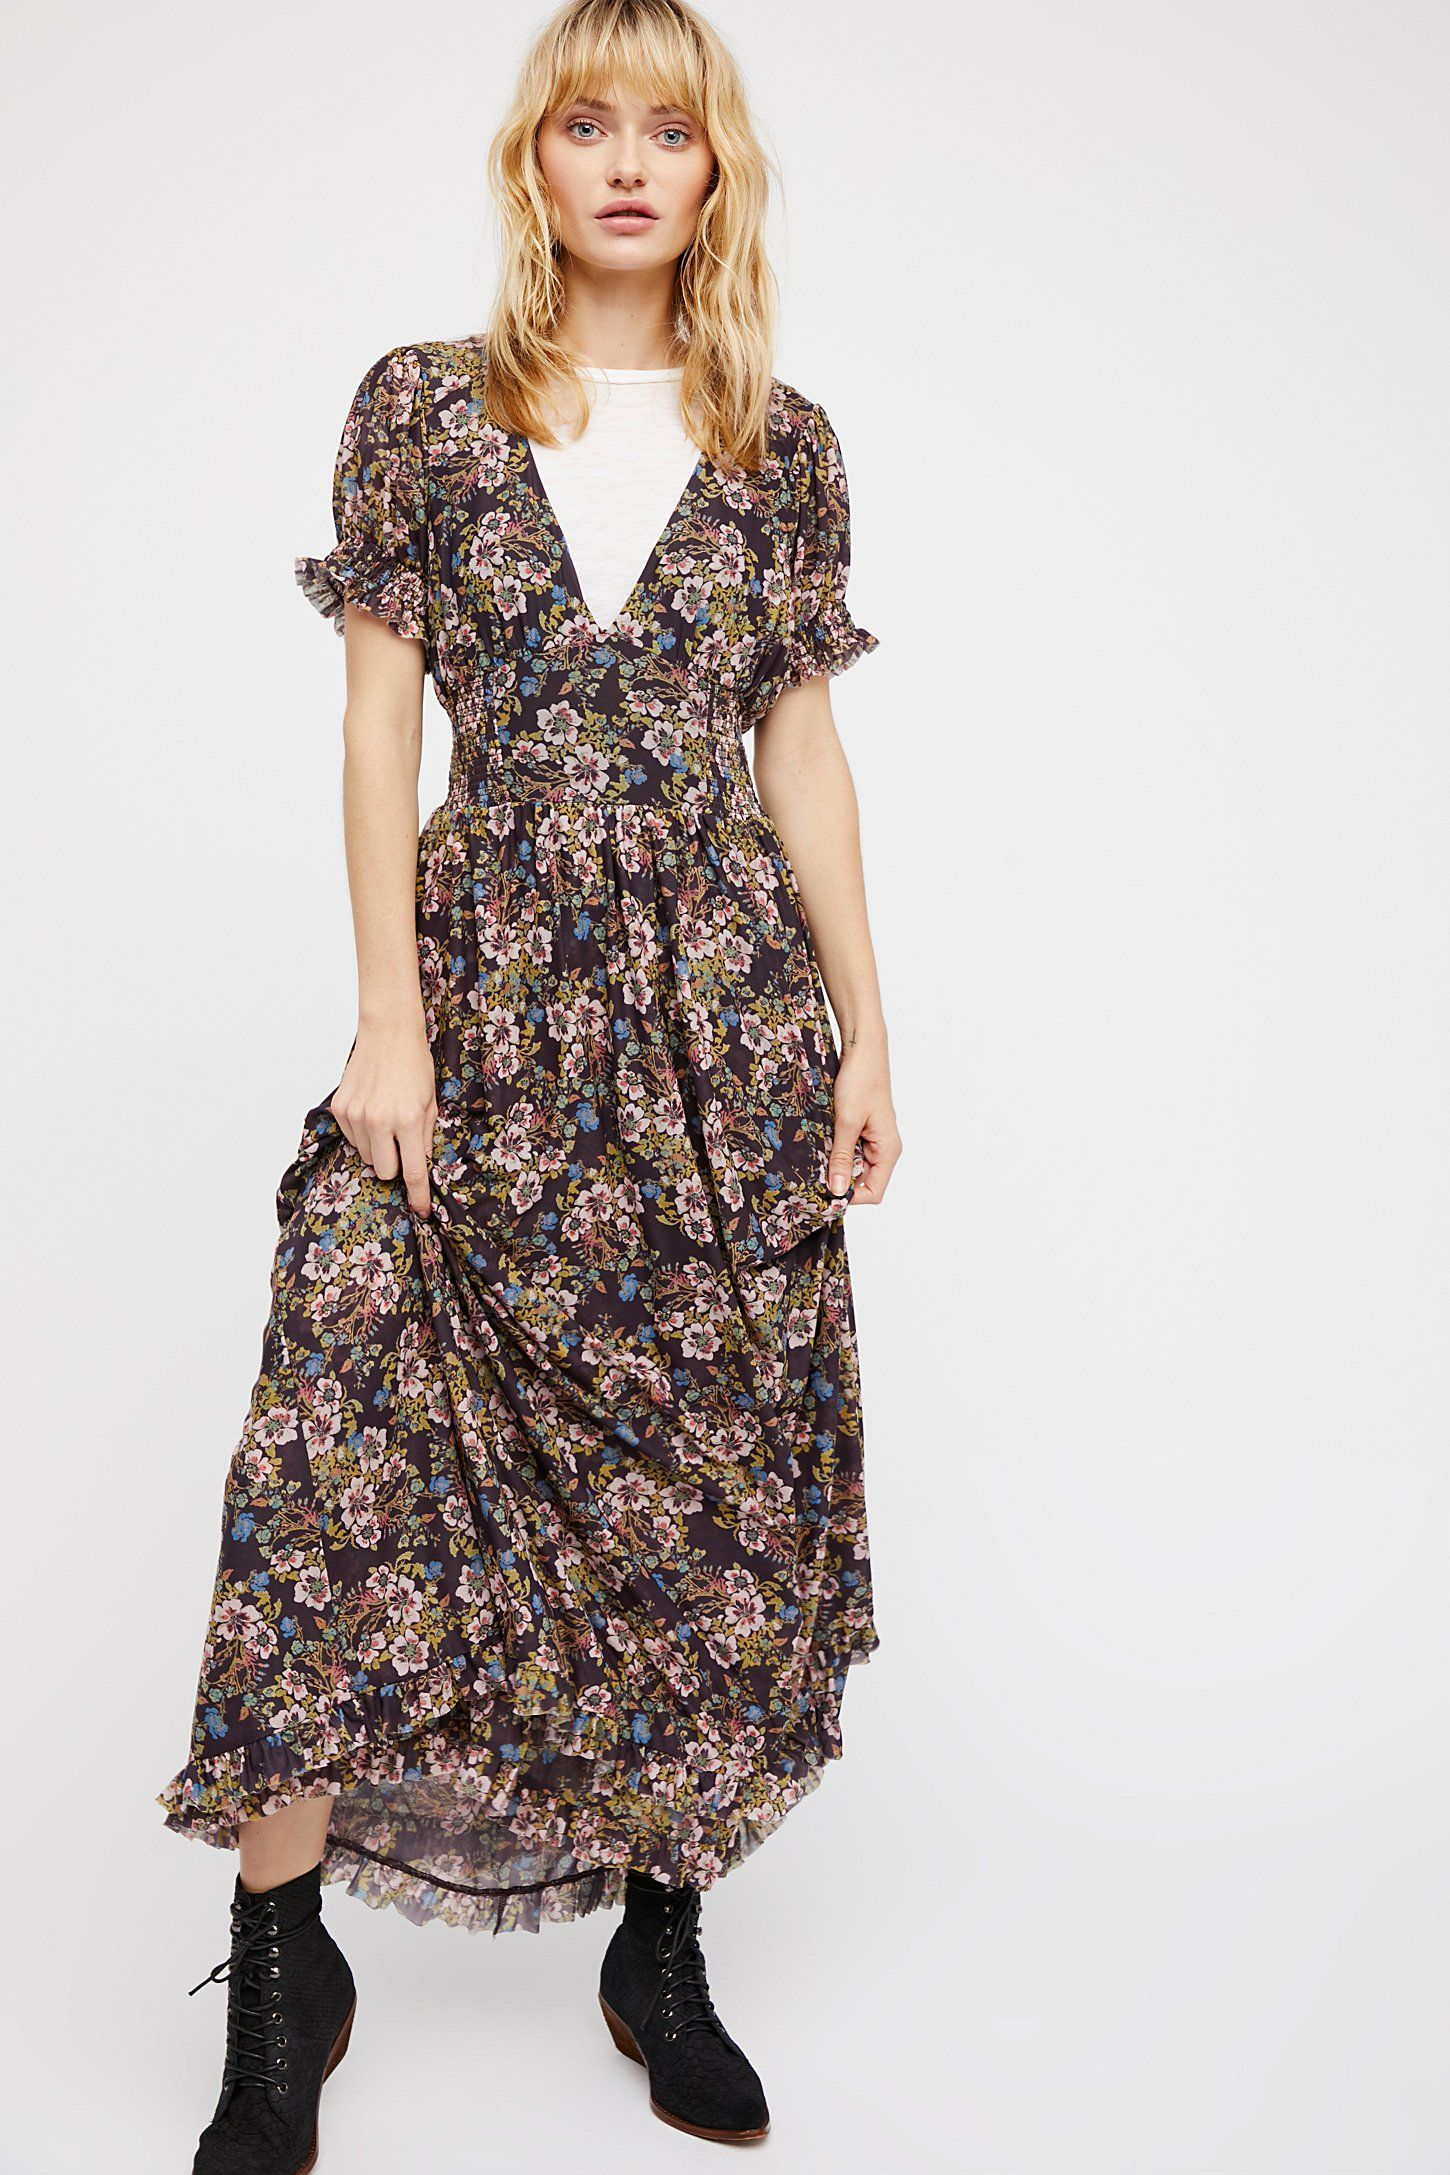 Shop our lost in love maxi at free people share style pics with